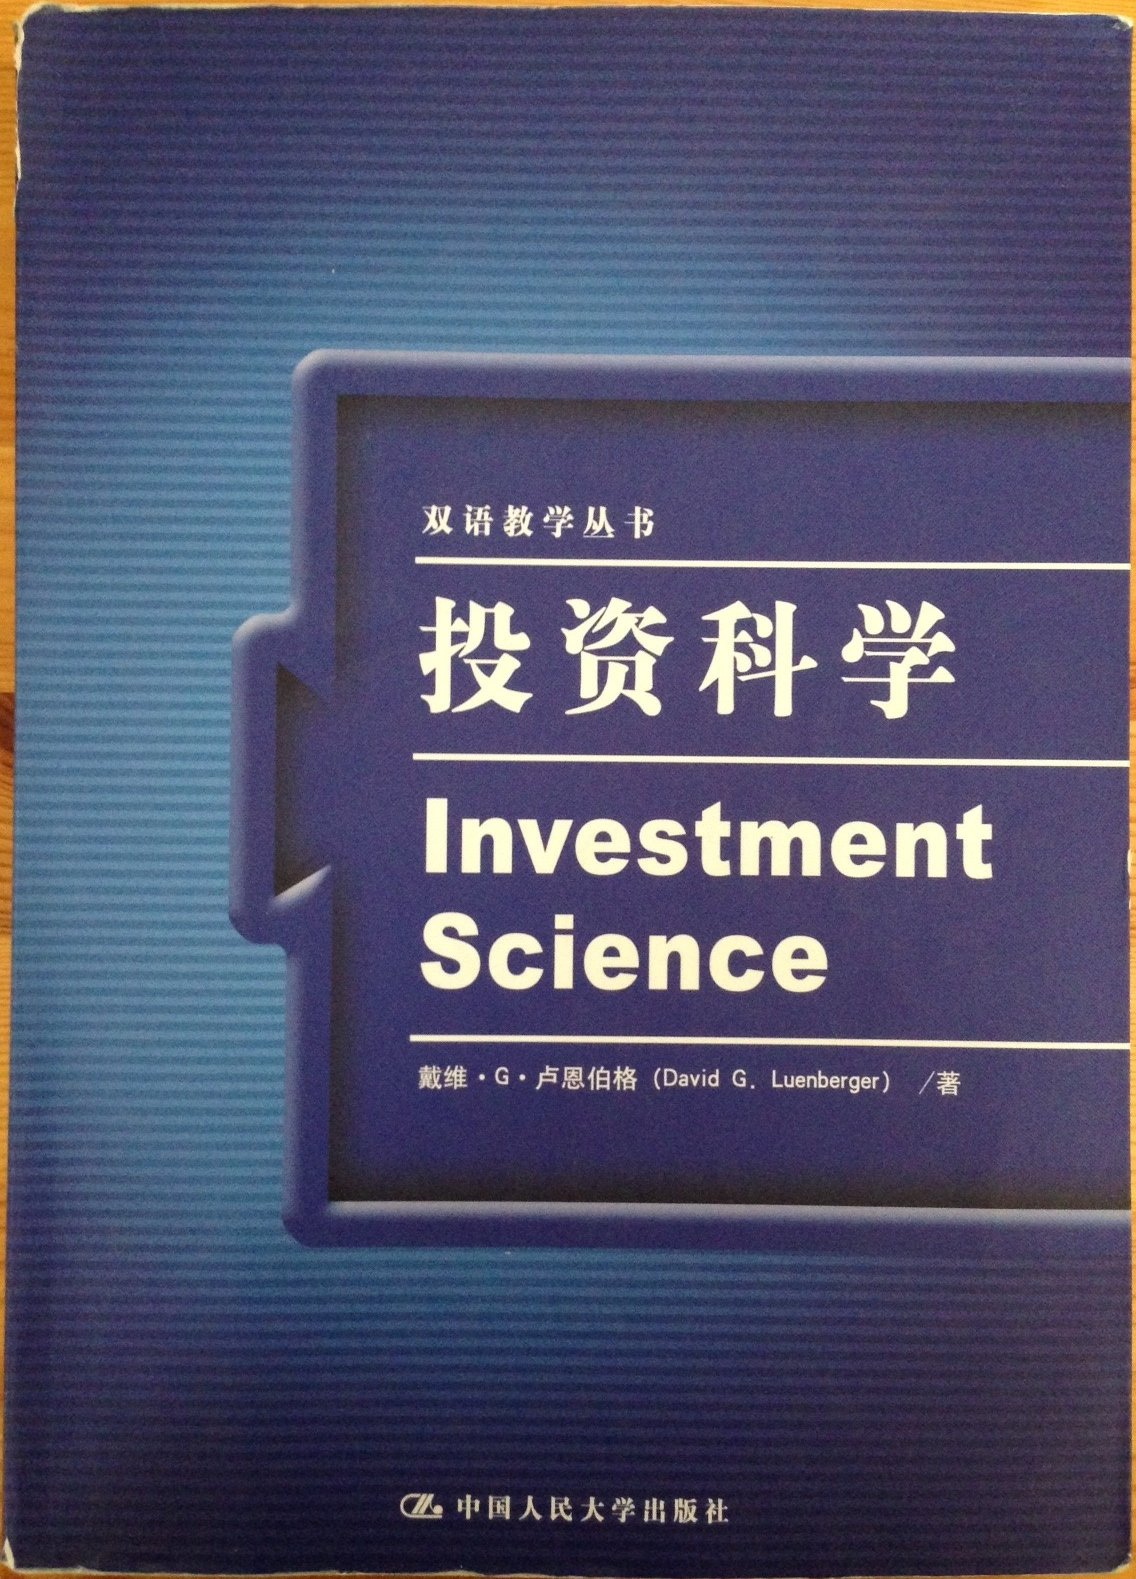 Investment science luenberger kindle foreign direct investment in india rbi rates